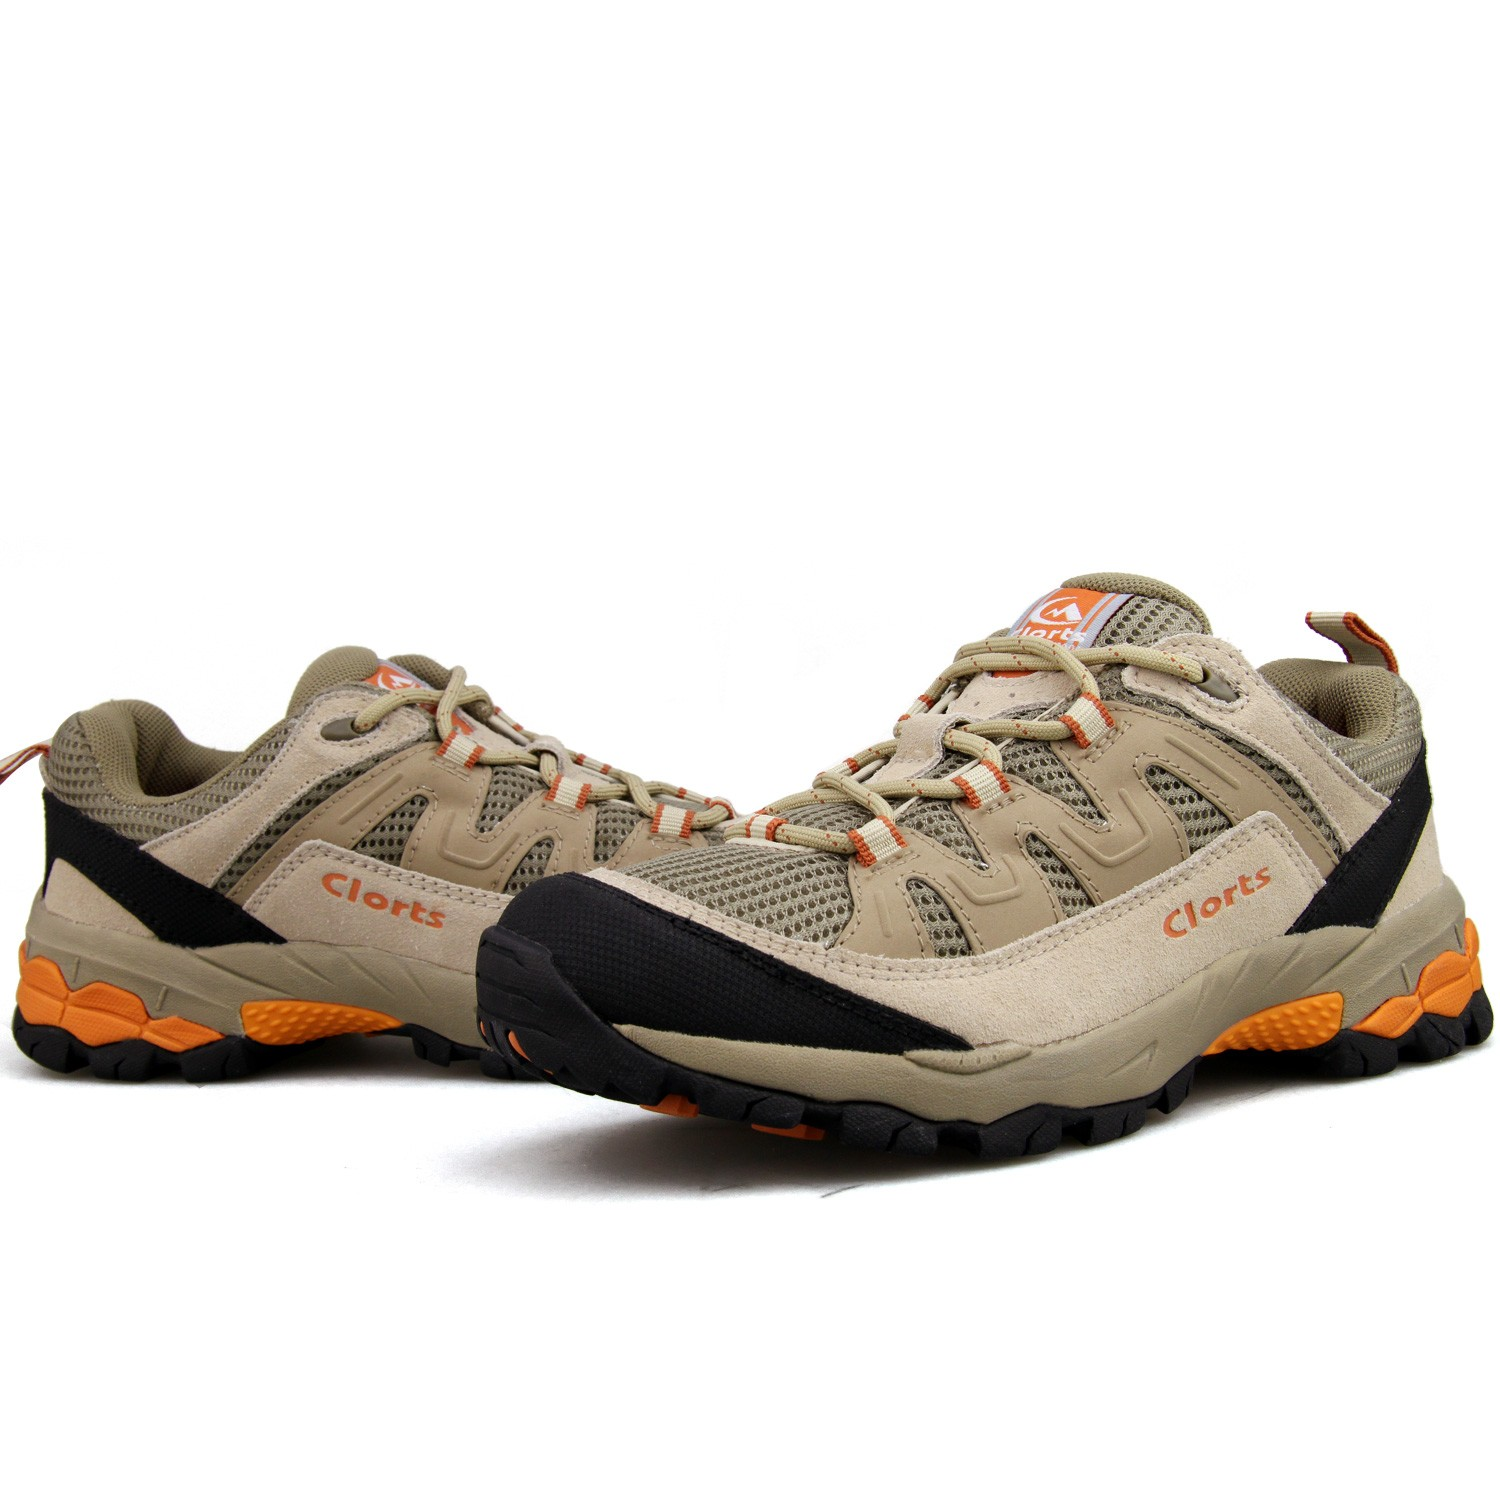 Mens Sports Racing shoes Manufacturers, Mens Sports Racing shoes Factory, Supply Mens Sports Racing shoes